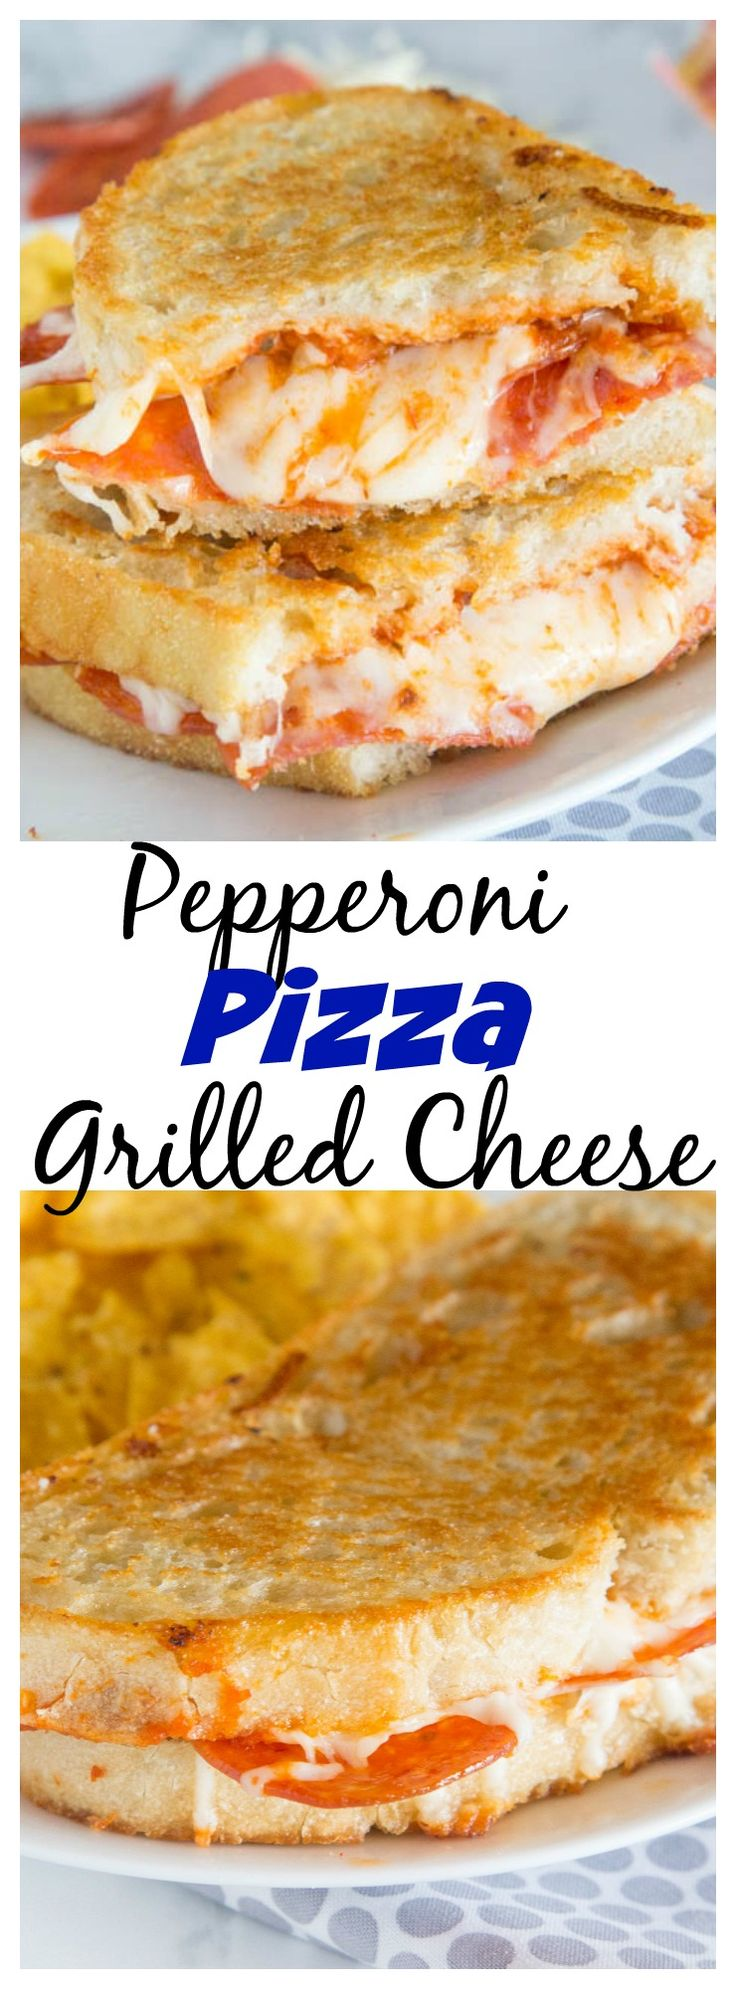 Pepperoni Pizza Grilled Cheese Sandwich – Take your favorite grilled cheese sandwich up a notch and make it taste like pepperoni pizza!